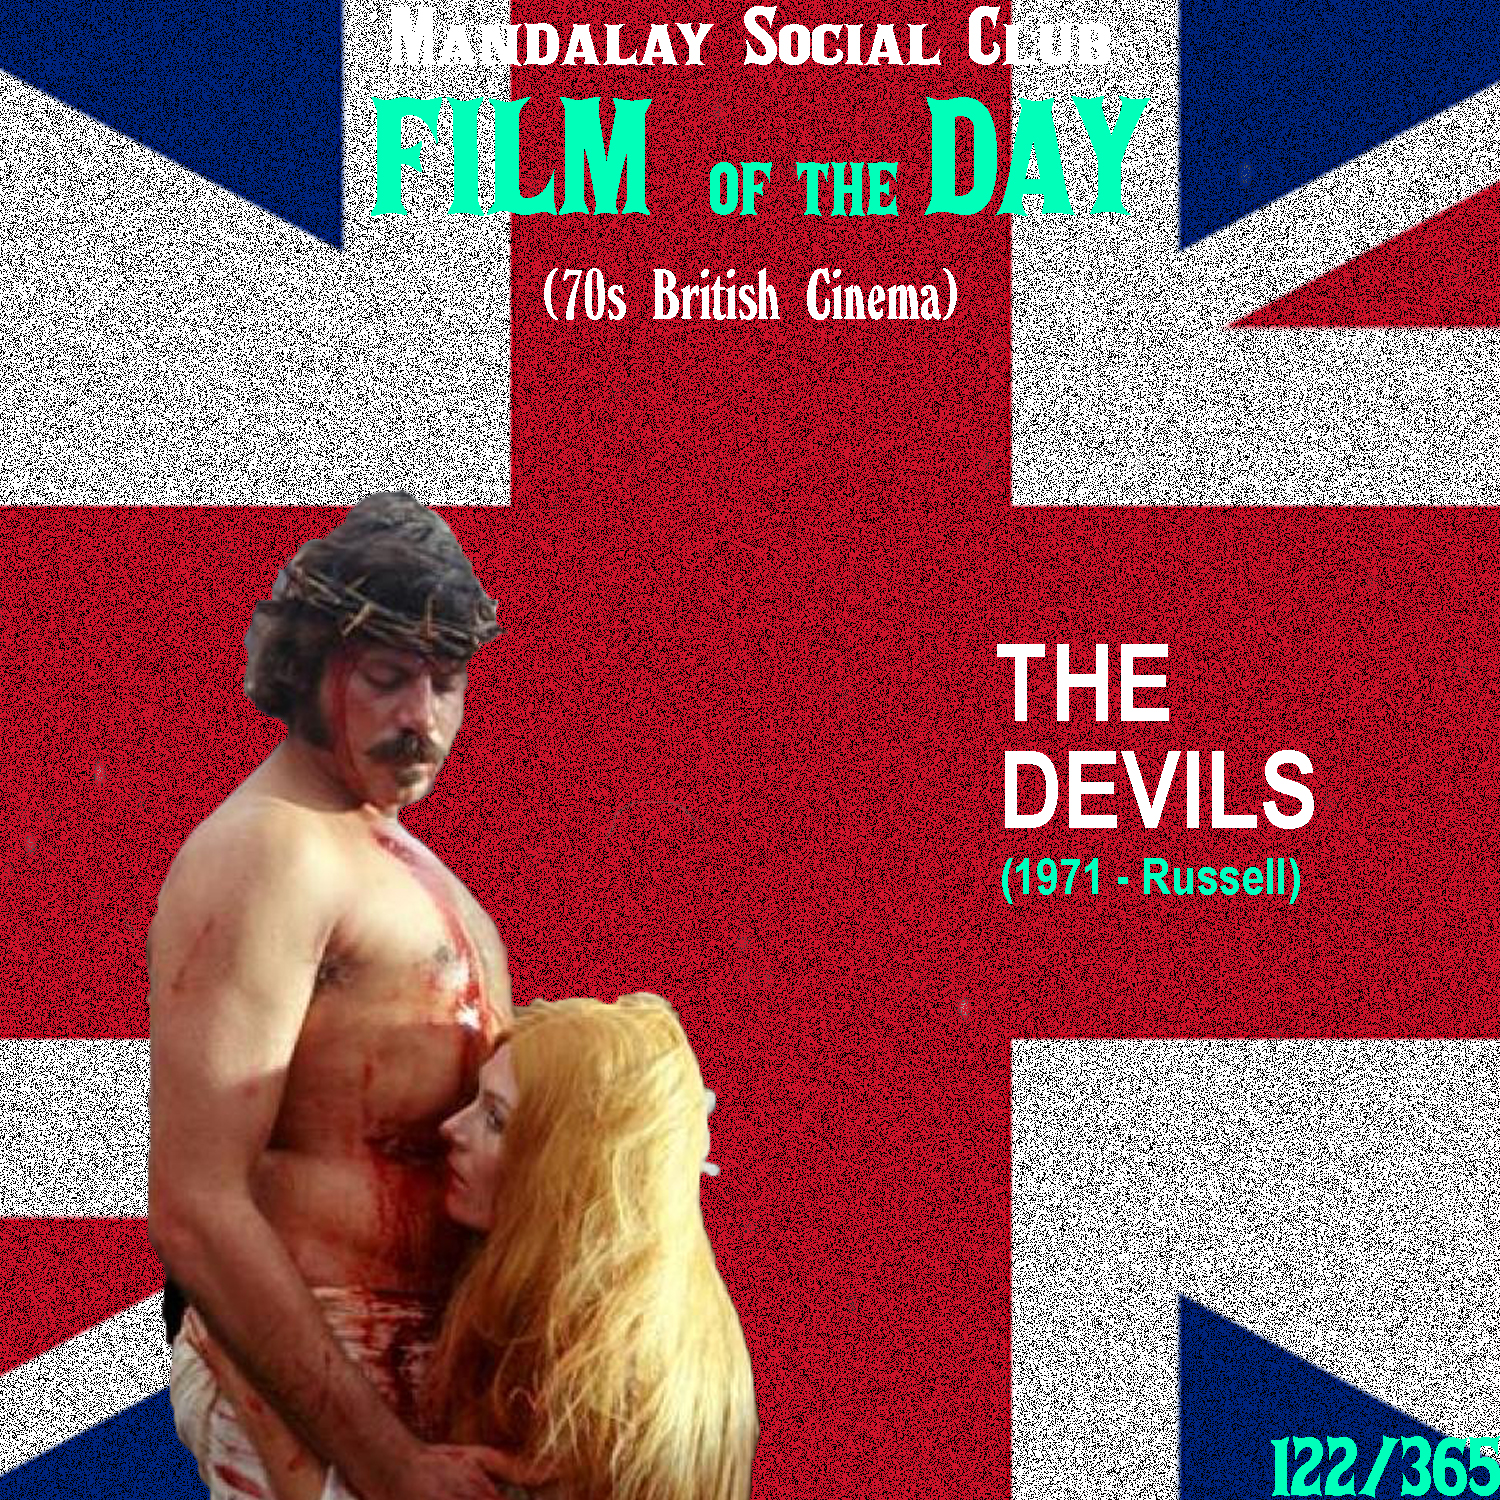 THE DEVILS     (dir. Ken Russell)   Easily one of the most controversial films of all time,  The Devils  is Ken Russell's nearly lost film, that to this day is pretty fuckin' difficult to find.   The Devils  is based on real life events that took place in 1600's France. It follows Urban Grandier, who was a Roman Catholic priest that had a fairly lax approach to sex as he took over the town of Loudon after the Governor died. The story shows how many of the sexually repressed nuns at the convent were in love with Grandier, and because of their inability to control themselves any further, were subject to ruthless exorcisms by the ignorant fathers of the Roman Catholic Church who have come to take back the town of Loudon.  The film has been dramatized for the sake of the screen, and in doing so Ken Russell has made what some people may argue is the most sacrilegious scene in cinema history. The scene, known as 'The Rape of Christ' has been cut out of most of the remaining editions of this film, but if you're 'lucky' enough to find an edition with it, you'll be presented with a wildly surreal look at a convent of nuns molesting a giant crucifix of Jesus. Needless to say, I don't think the Christian or Catholic community is very supportive of this film. Although, I think it's necessary for everyone who identifies wit ha religion to watch this film. The same way that we look back at ridiculous religious practices from the 1600's with shock, the future will look back at us today practicing religion with the same shock. It's an eye opening film that creates a lot of food for thought in how misunderstood religion is.    4/5     WATCH: Good Luck lol